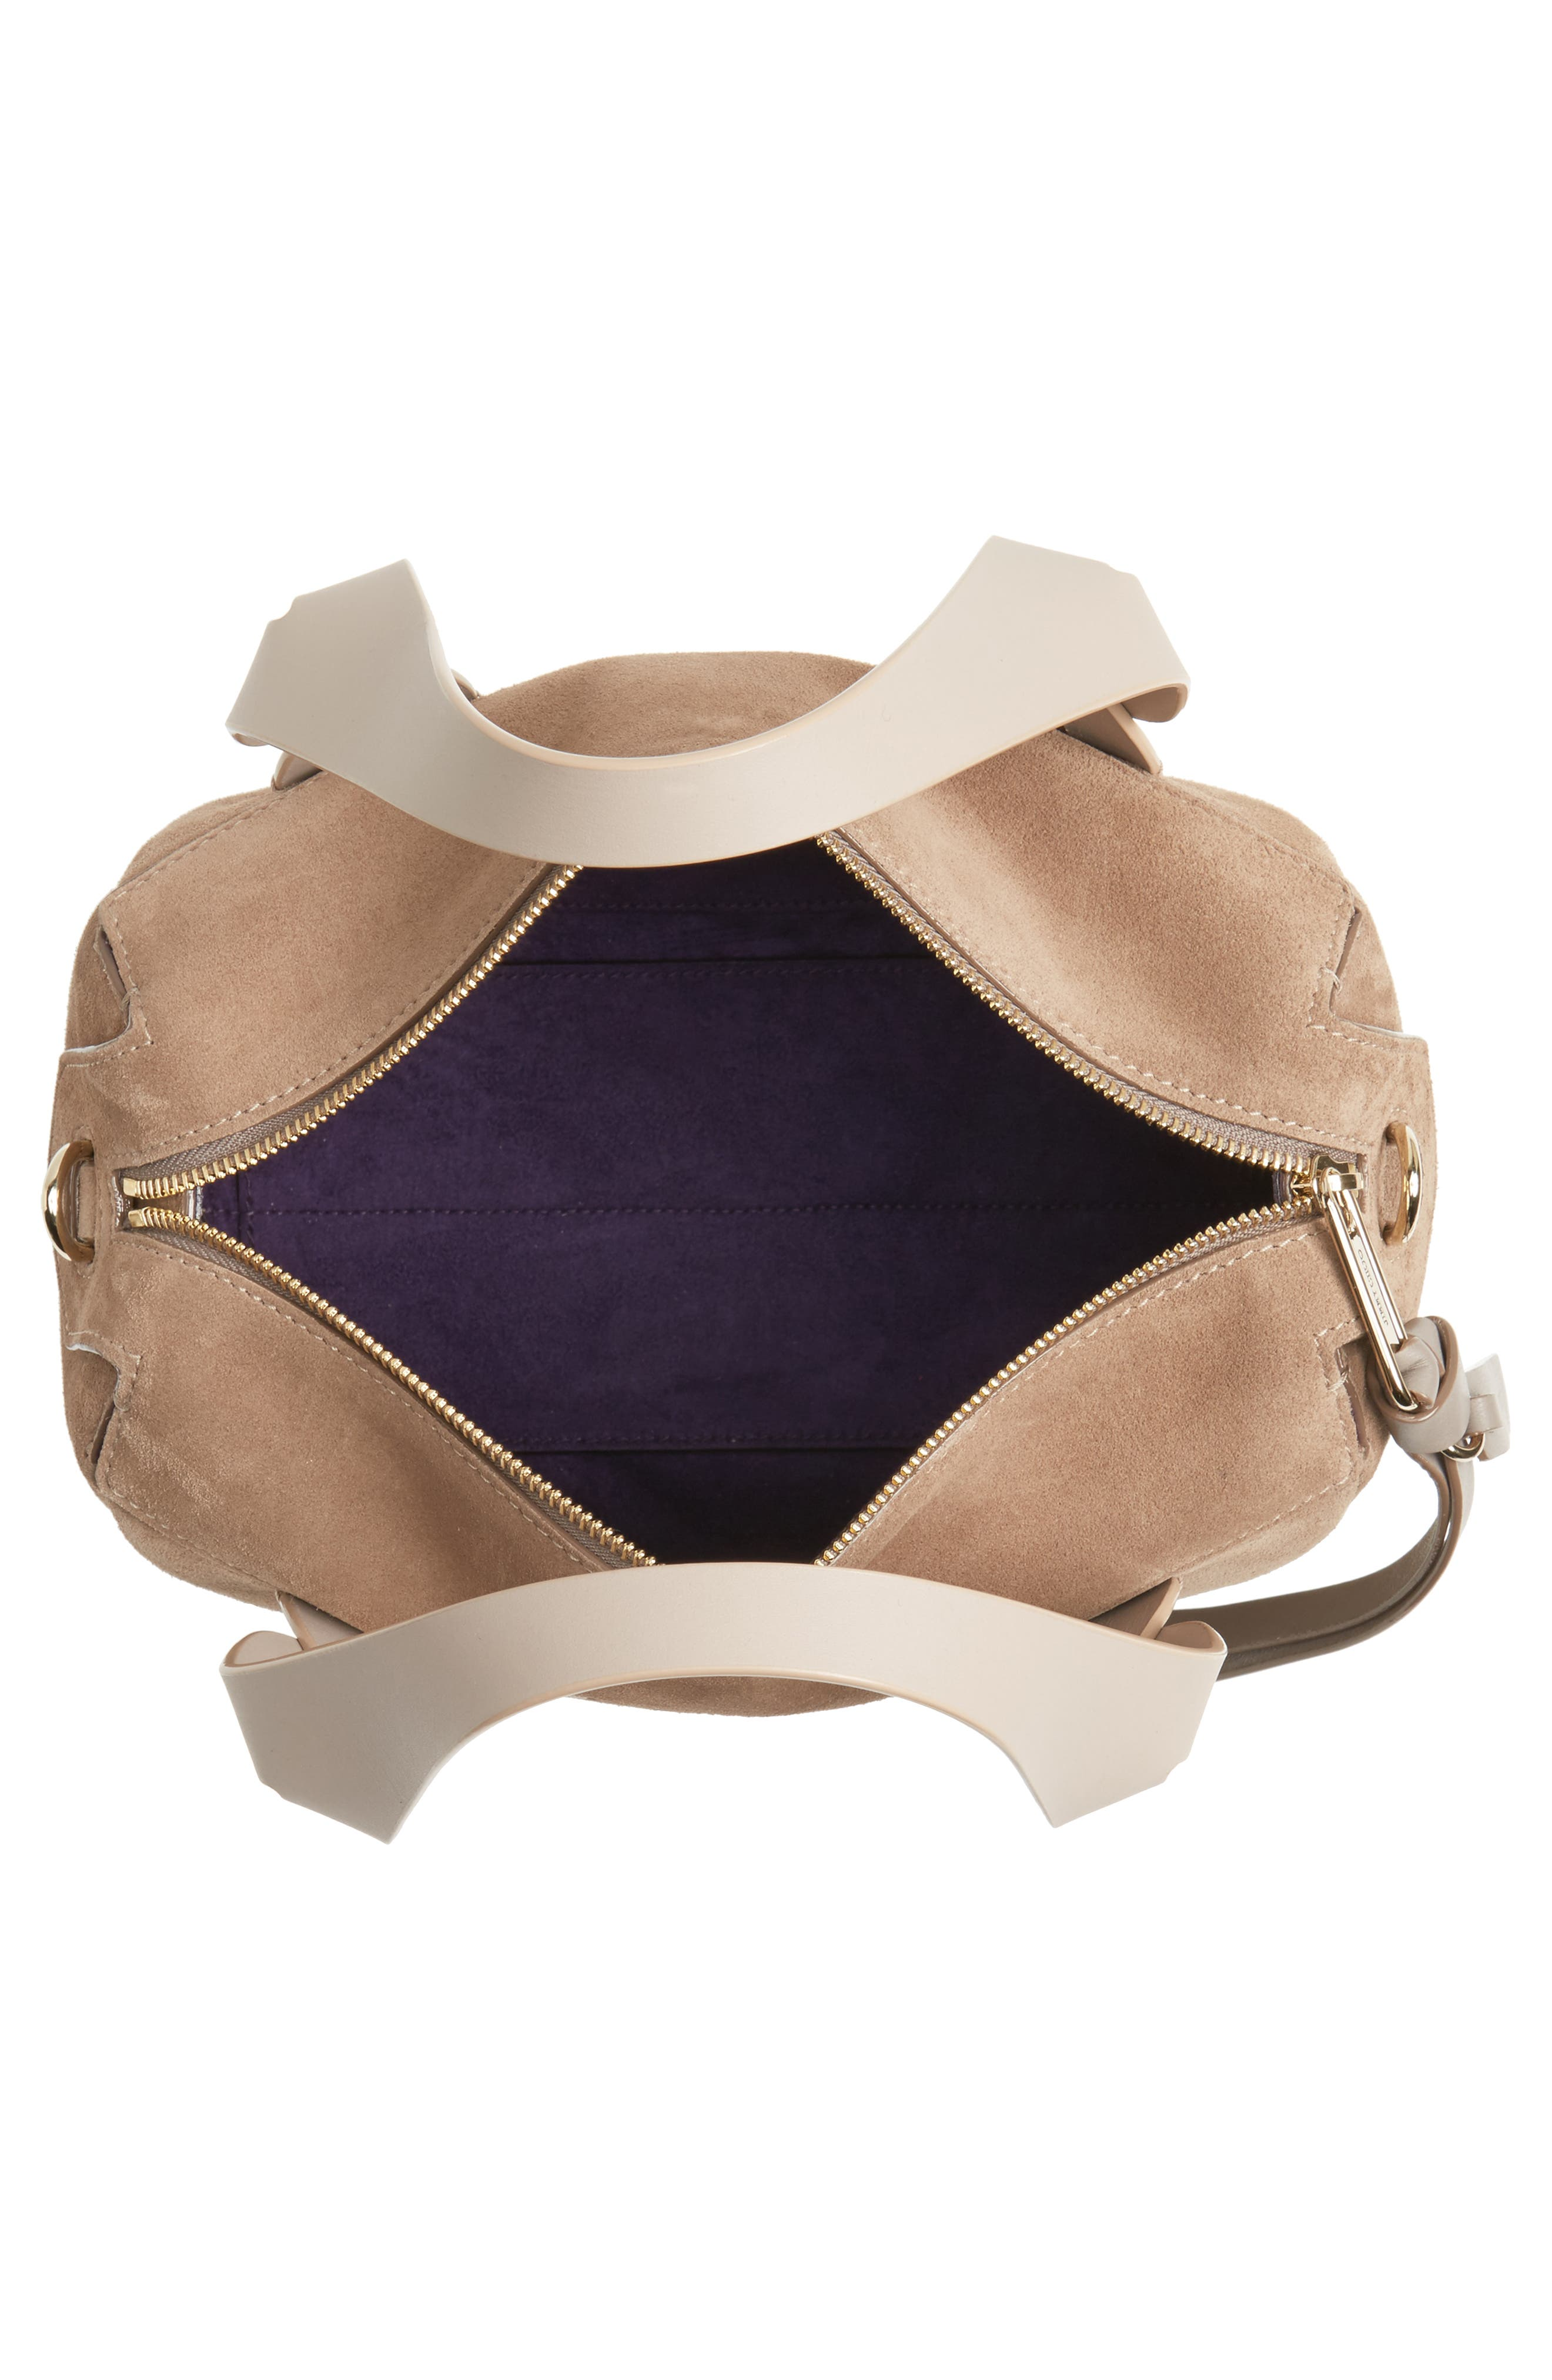 Small Allie Nappa Leather Bowling Bag,                             Alternate thumbnail 4, color,                             200